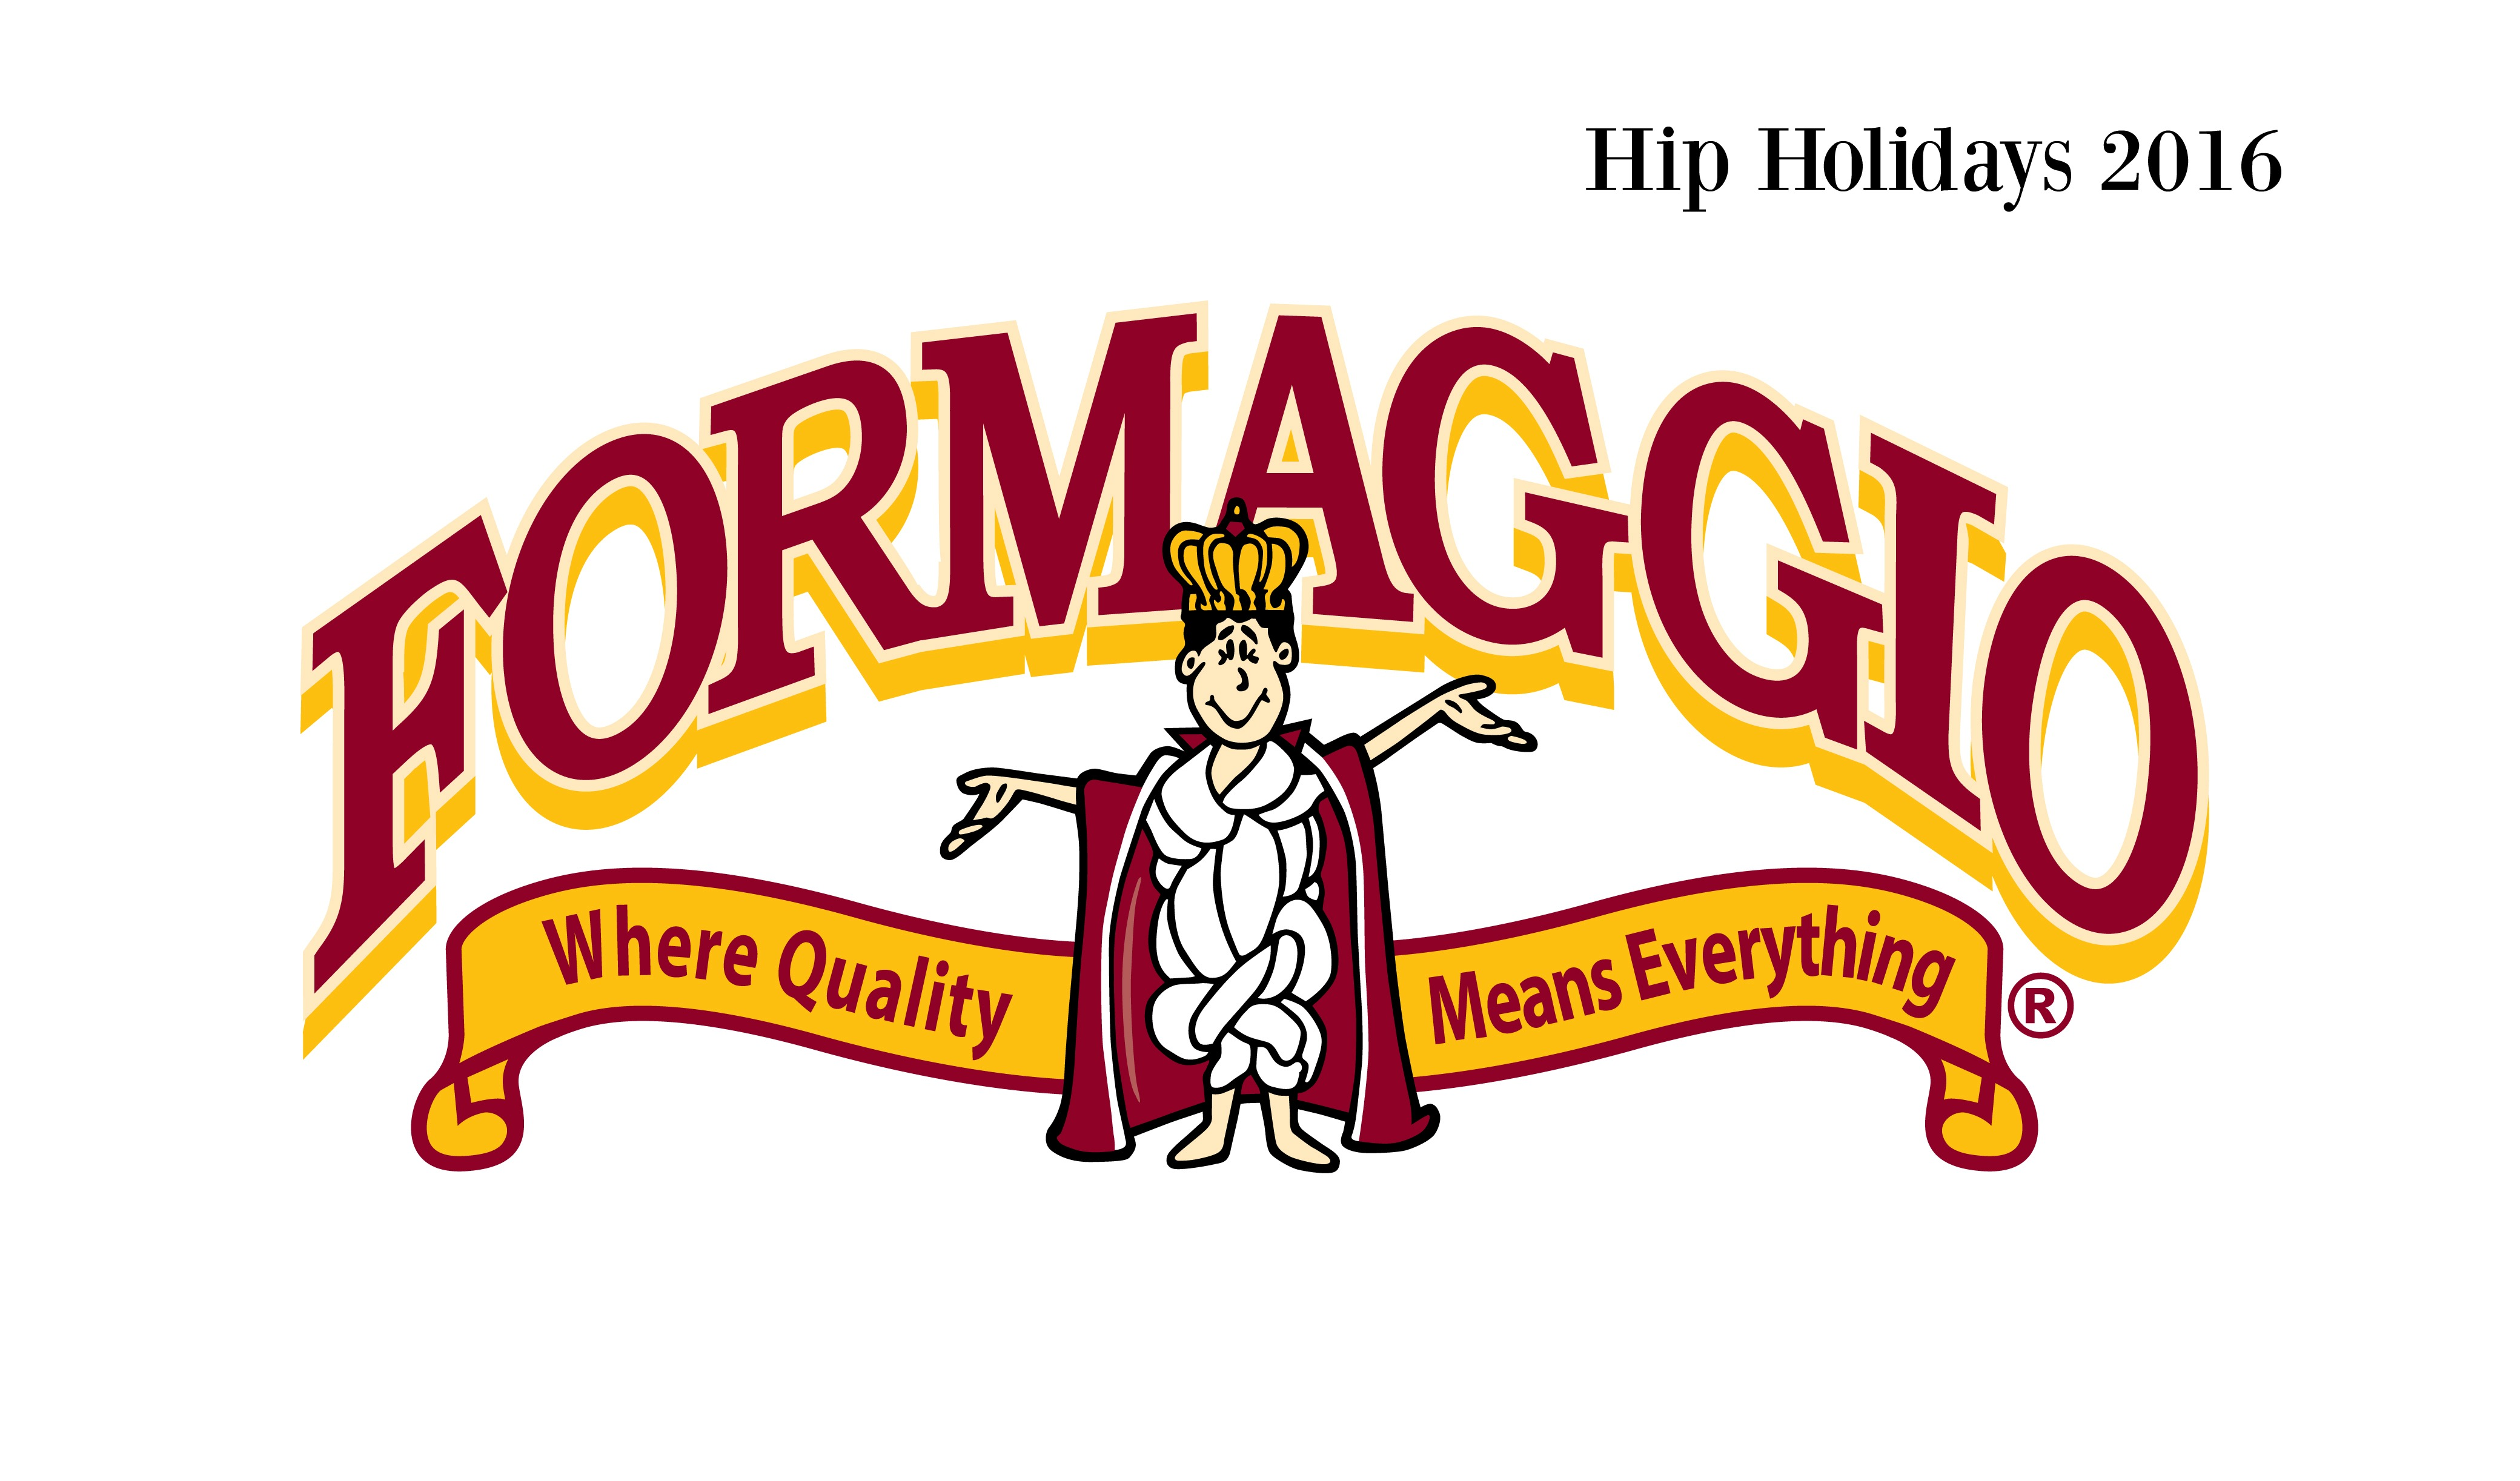 #HIPHOLIDAYS 2016: Formaggio Cheese